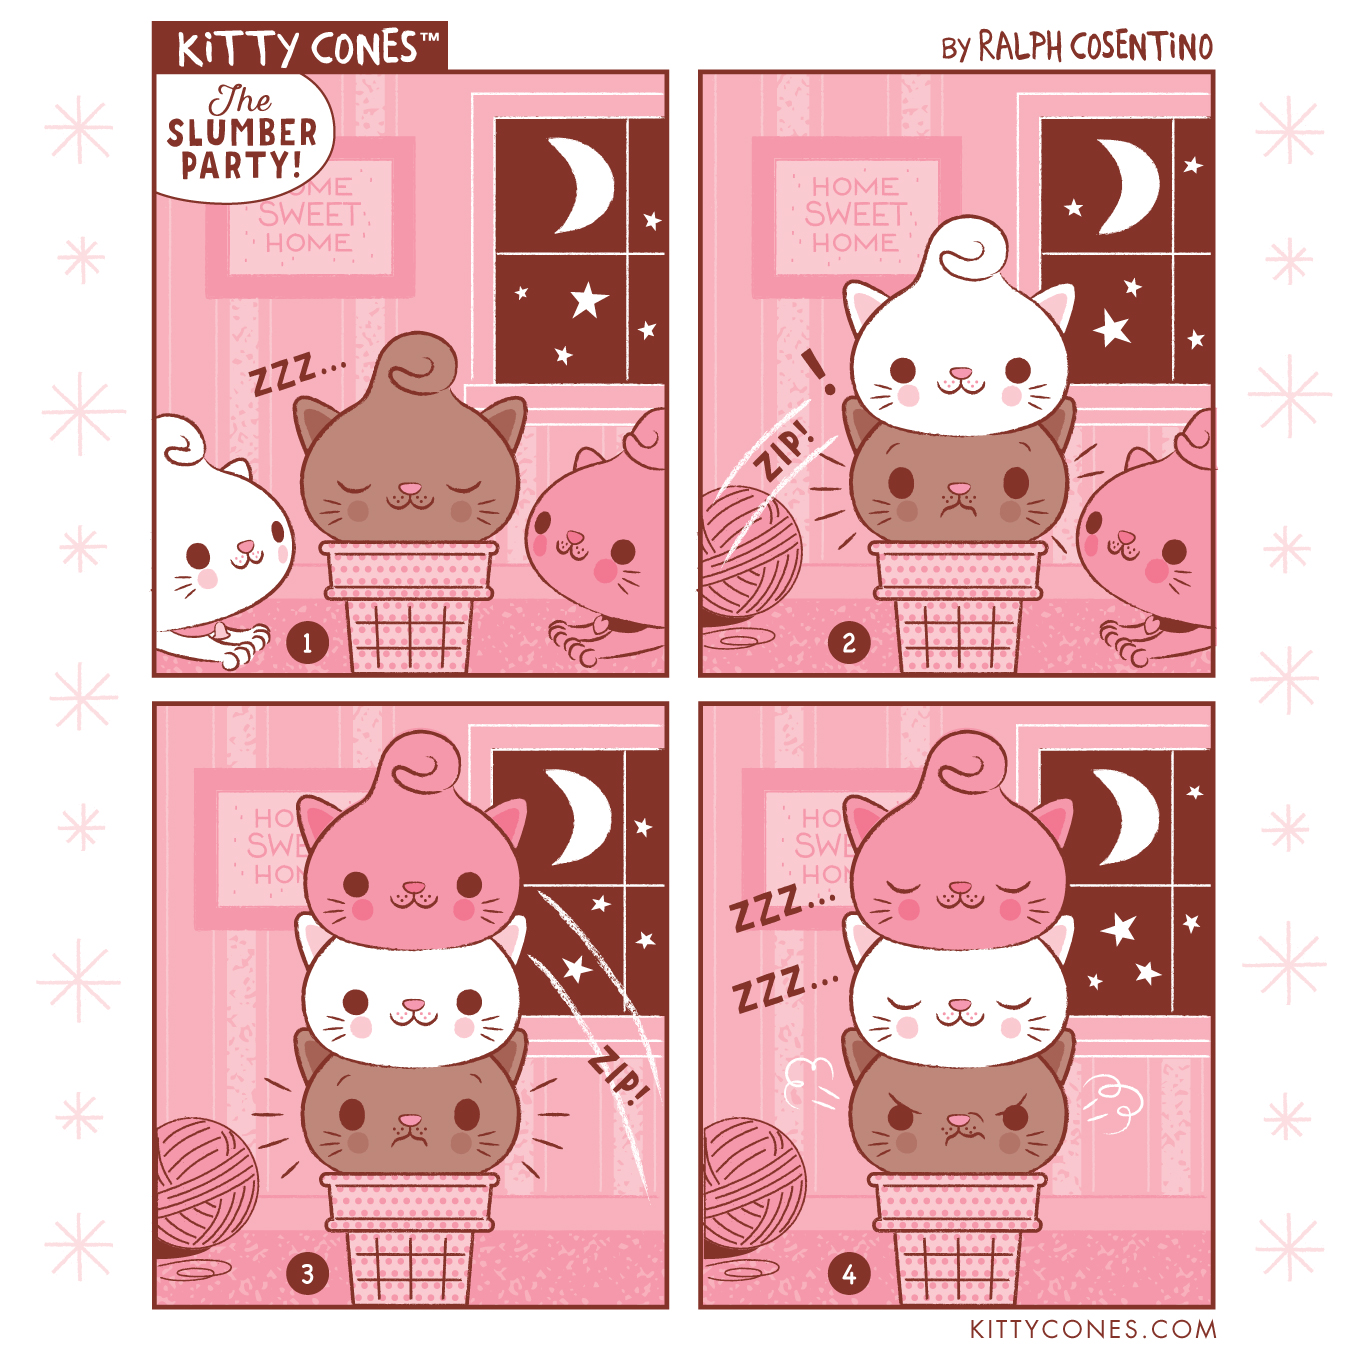 Kitty Cones Comic Strip # 6